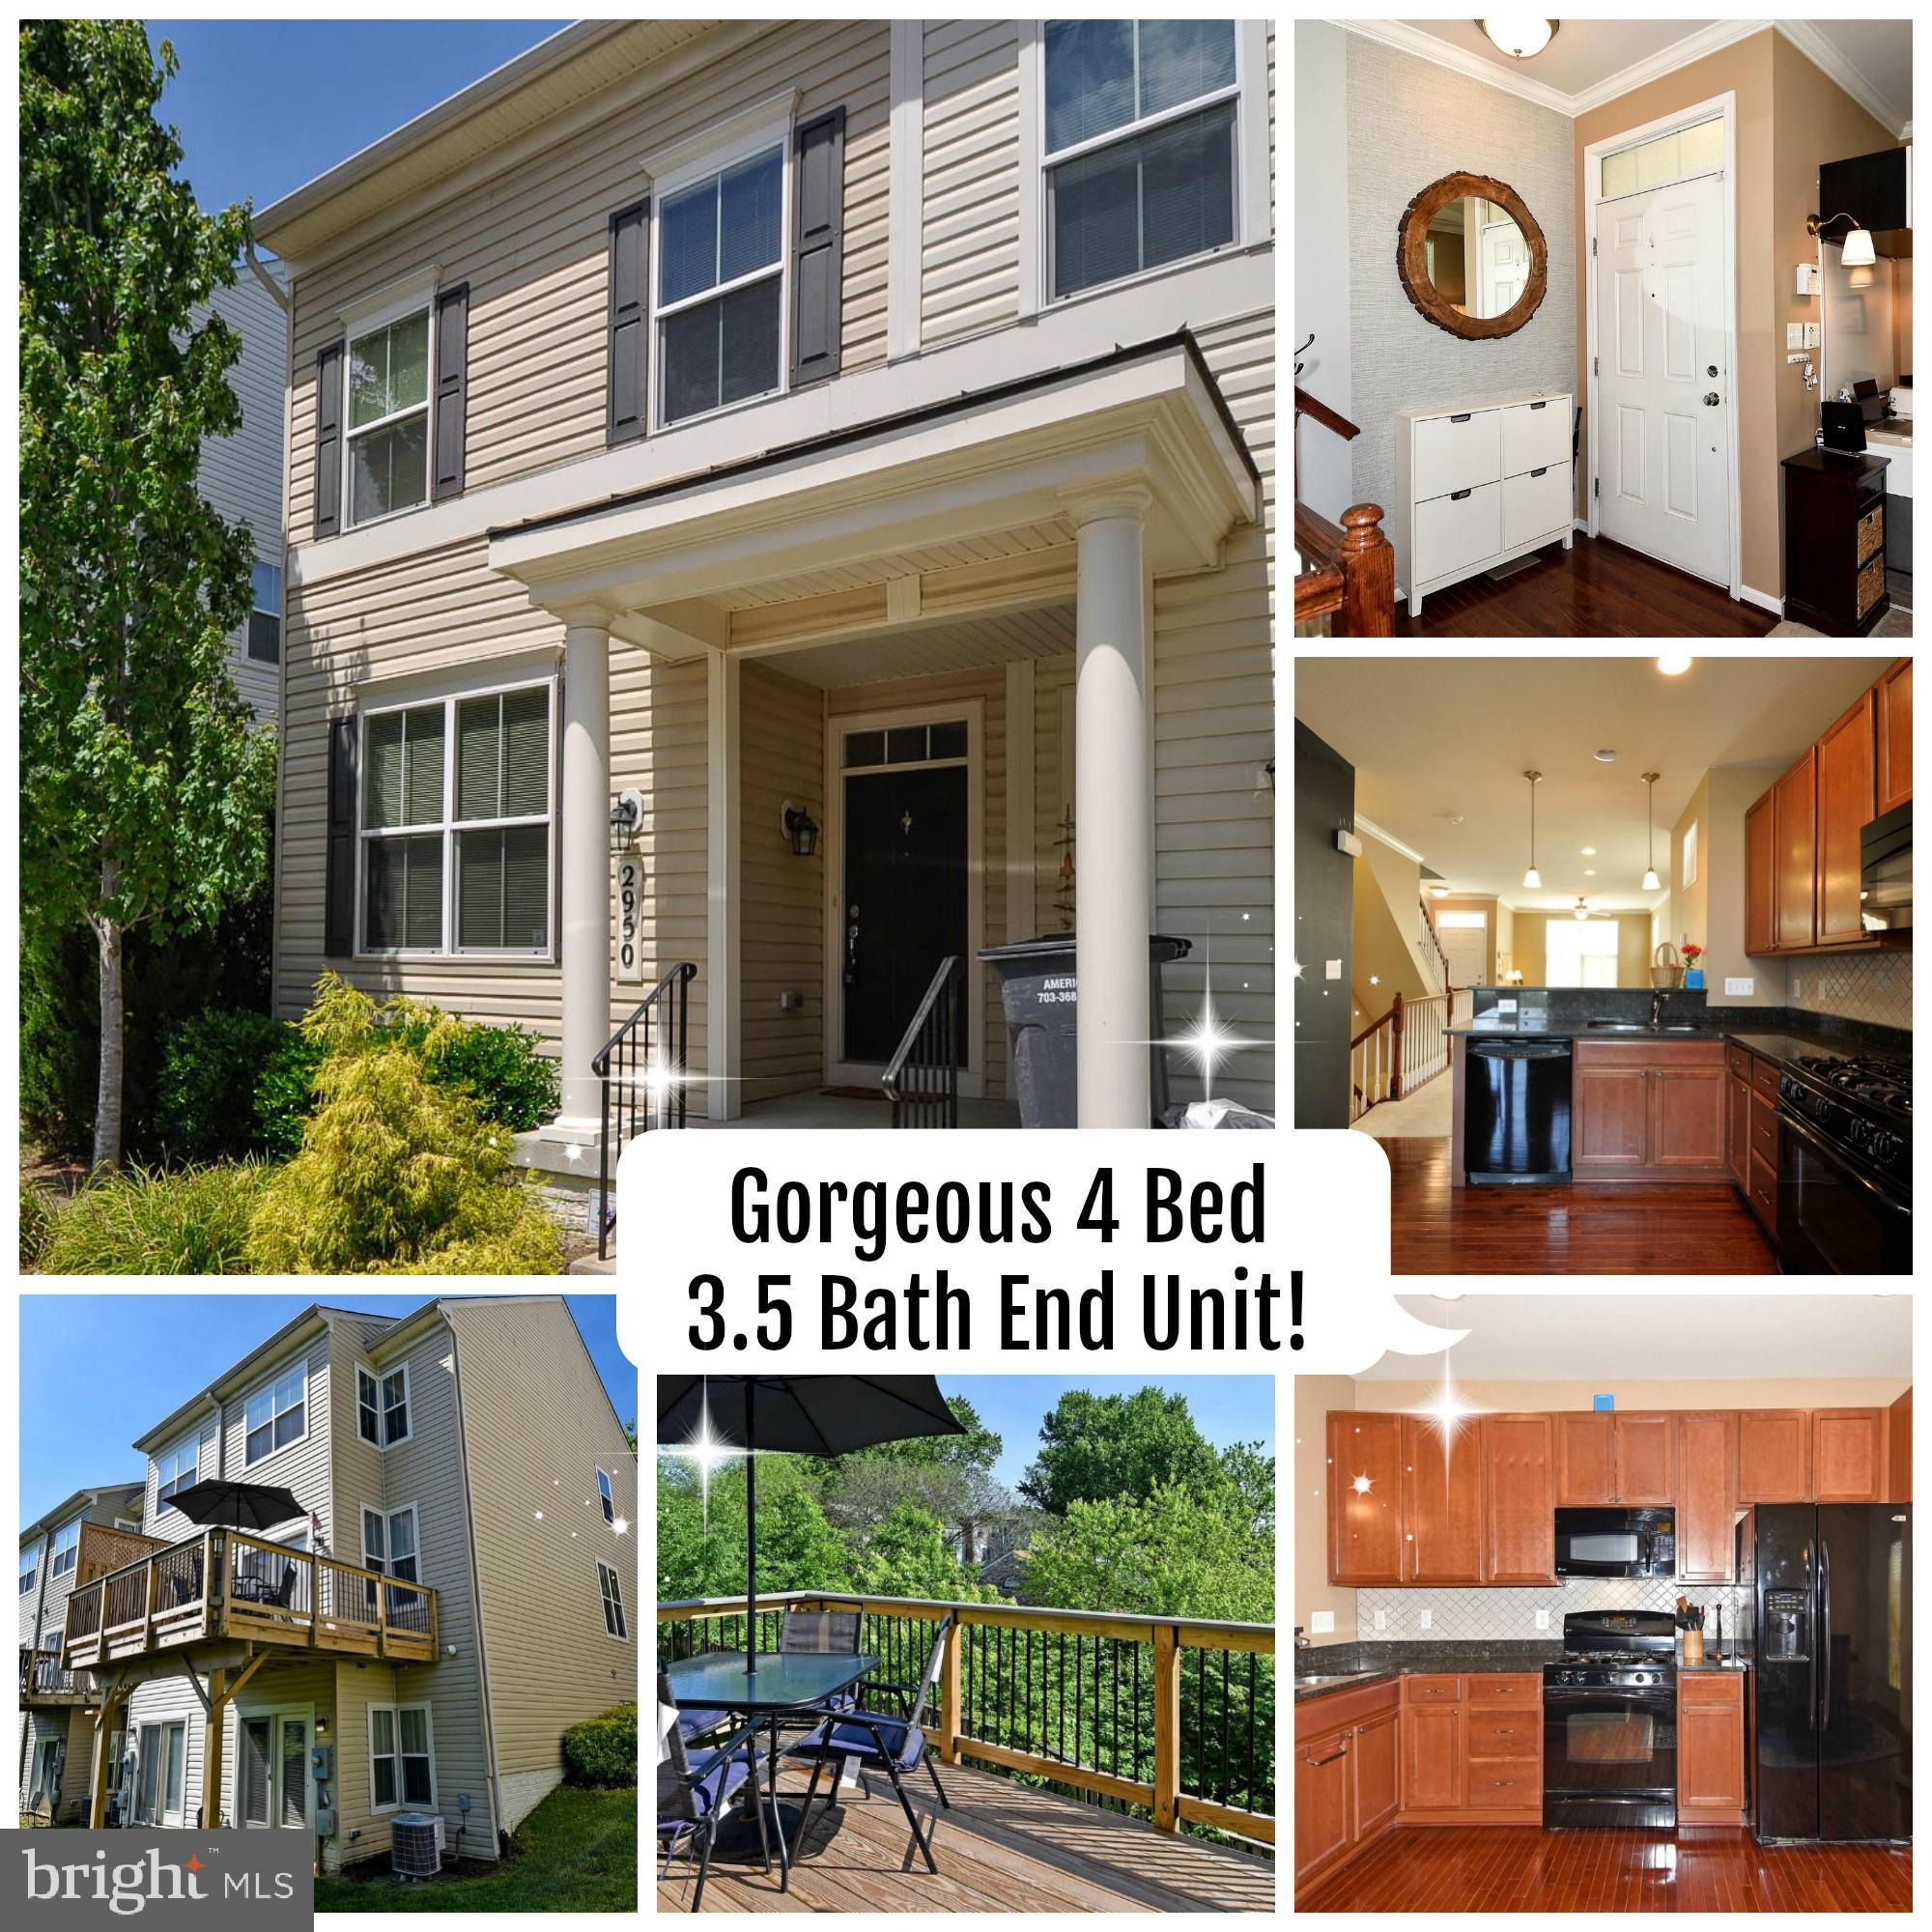 Beautiful, light and bright end unit townhouse conveniently located close to shopping, dining and major commuter options. The home features 4 bedrooms 3.5 bathrooms, upgraded kitchen and bathrooms, over sized deck and so much more. This home is located in an amenity filled neighborhood offering outdoor pool, playgrounds and Club House with Fitness Center.